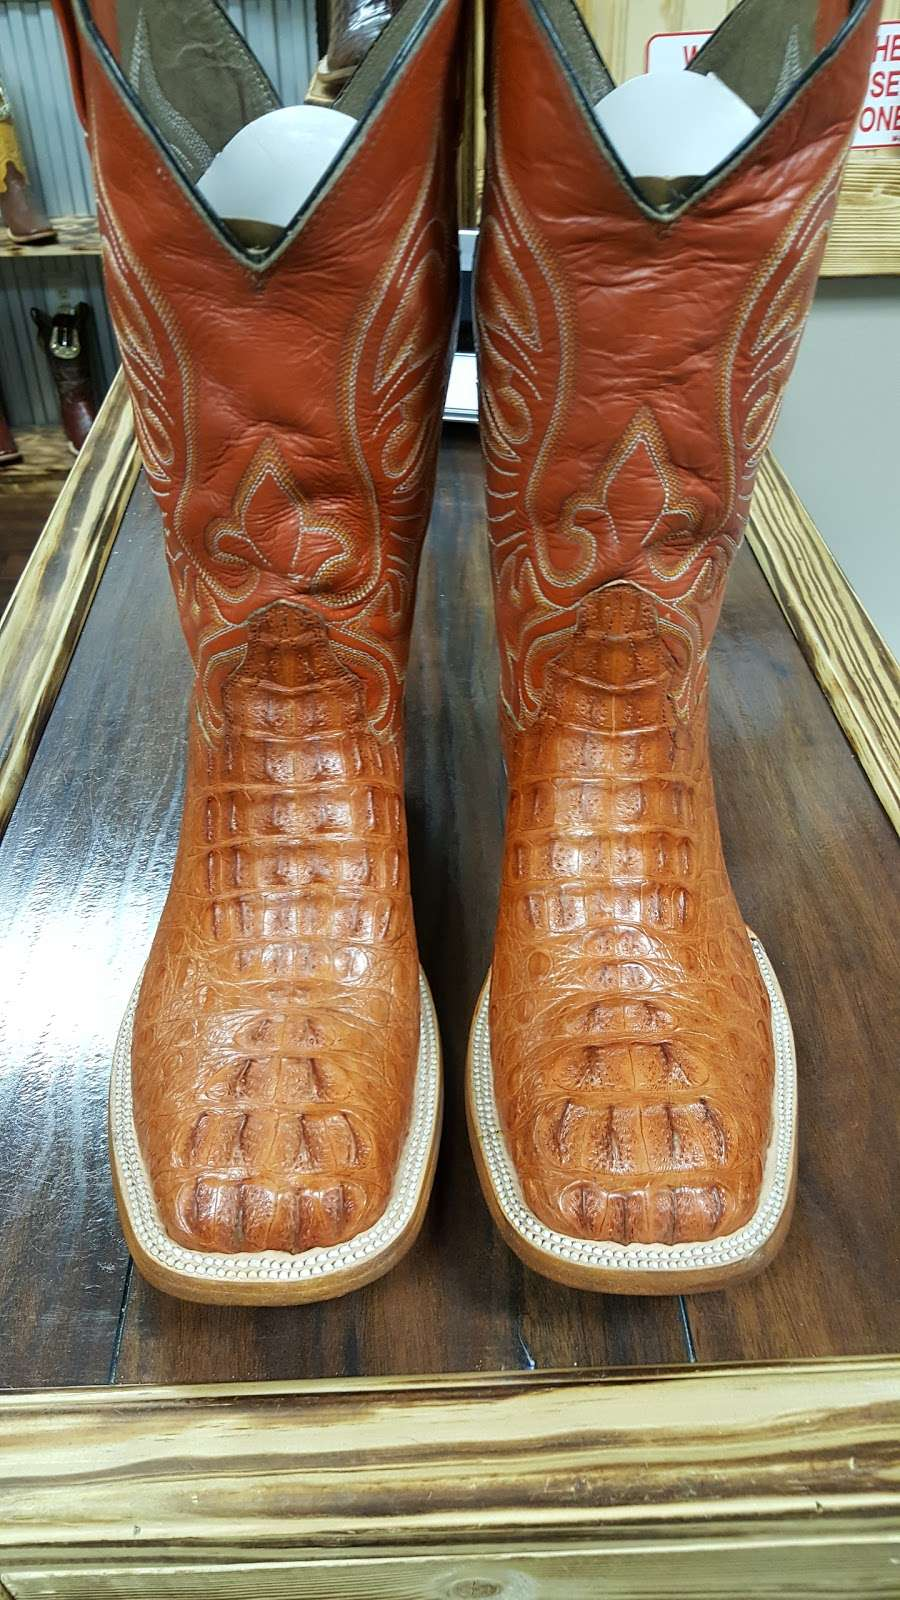 LA HACIENDA BOOT CO. - shoe store  | Photo 9 of 10 | Address: 2525 S Wayside Dr, Houston, TX 77023, USA | Phone: (713) 514-9939